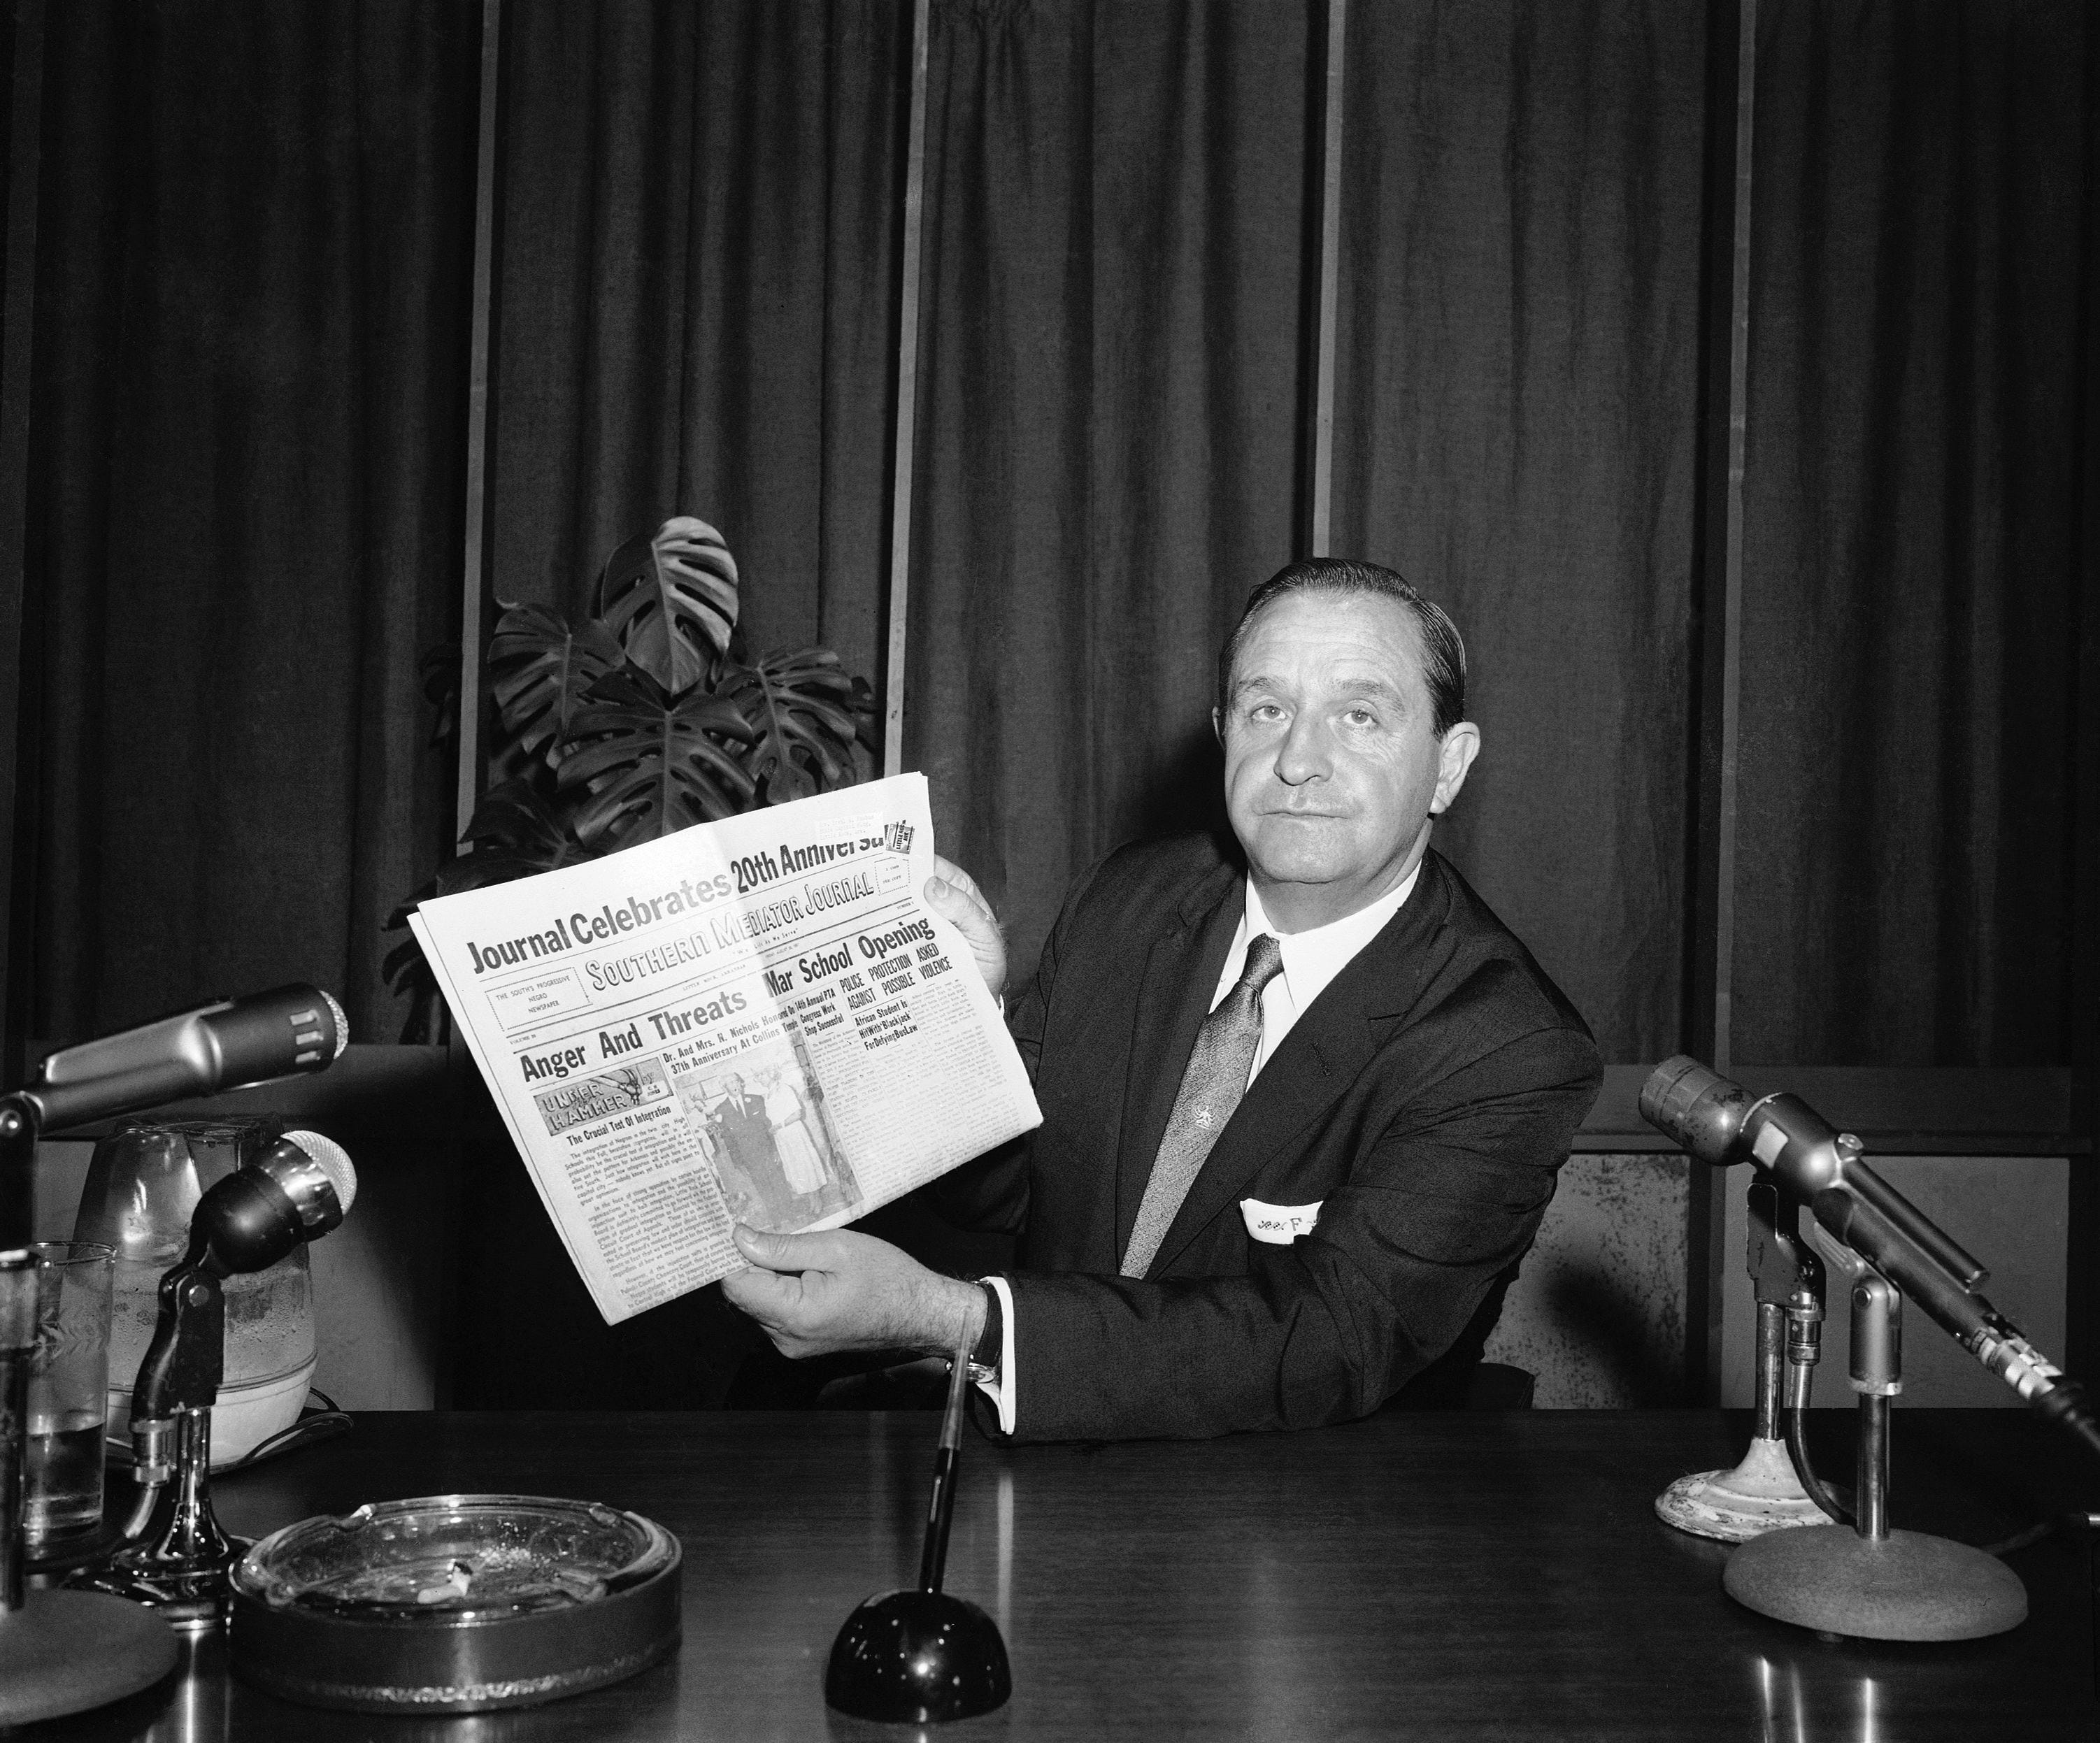 """Gov. Orval Faubus shows his television audience a local black newspaper headline: """"Anger and Threats Mar School Opening"""" in Little Rock, Sept. 3, 1957. He then directed the National Guard to maintain """"peace and order"""" at Central High School where racial integration was scheduled."""